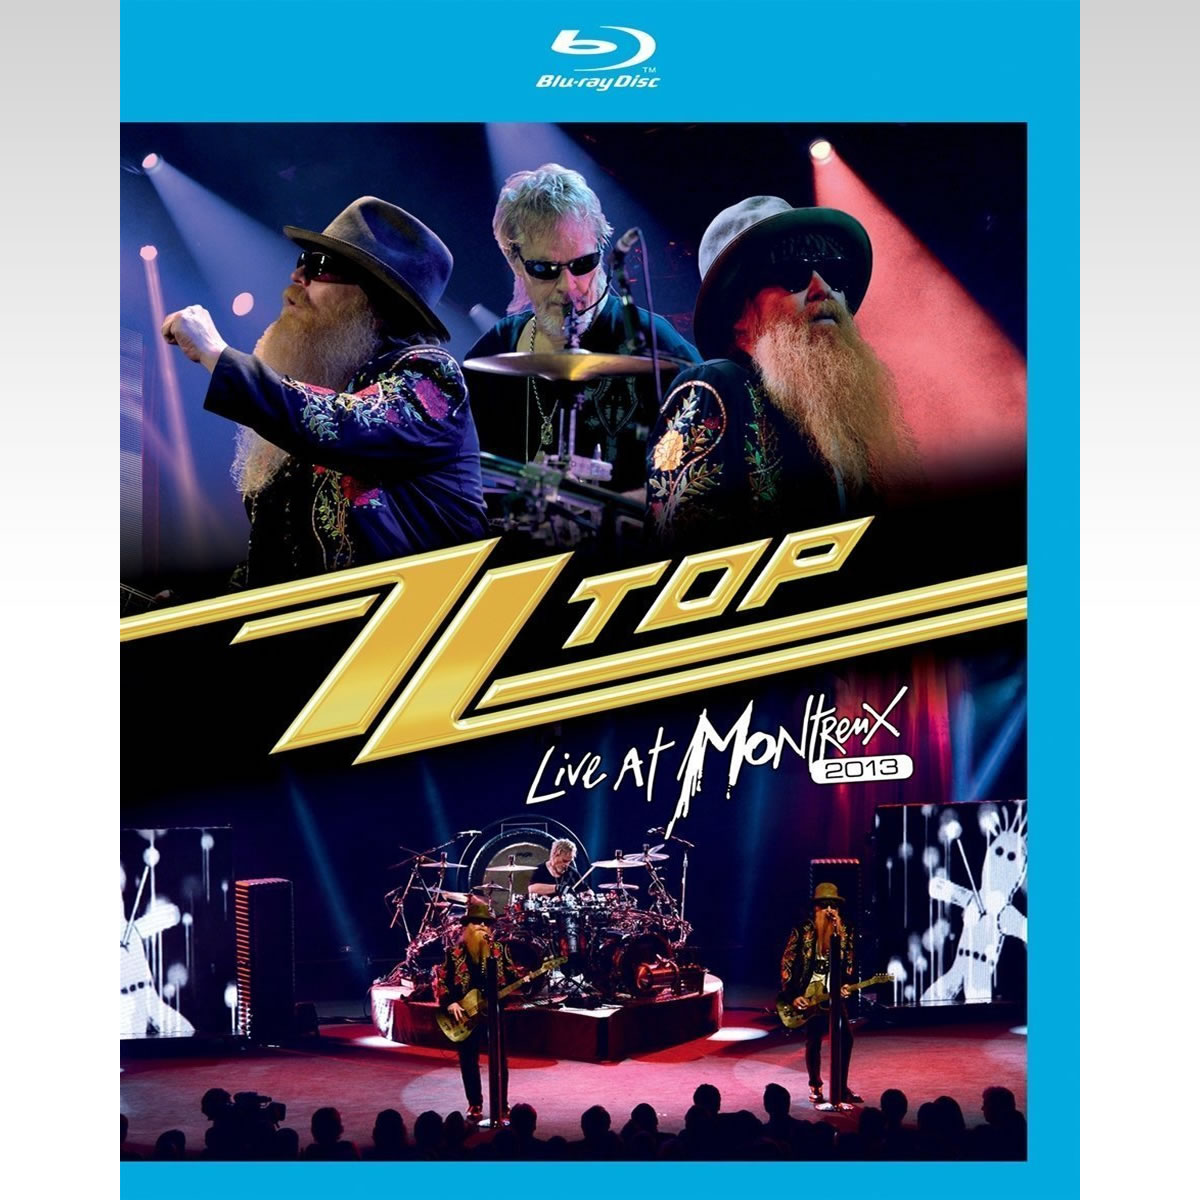 ZZ TOP: LIVE AT MONTREUX 2013 (BLU-RAY)